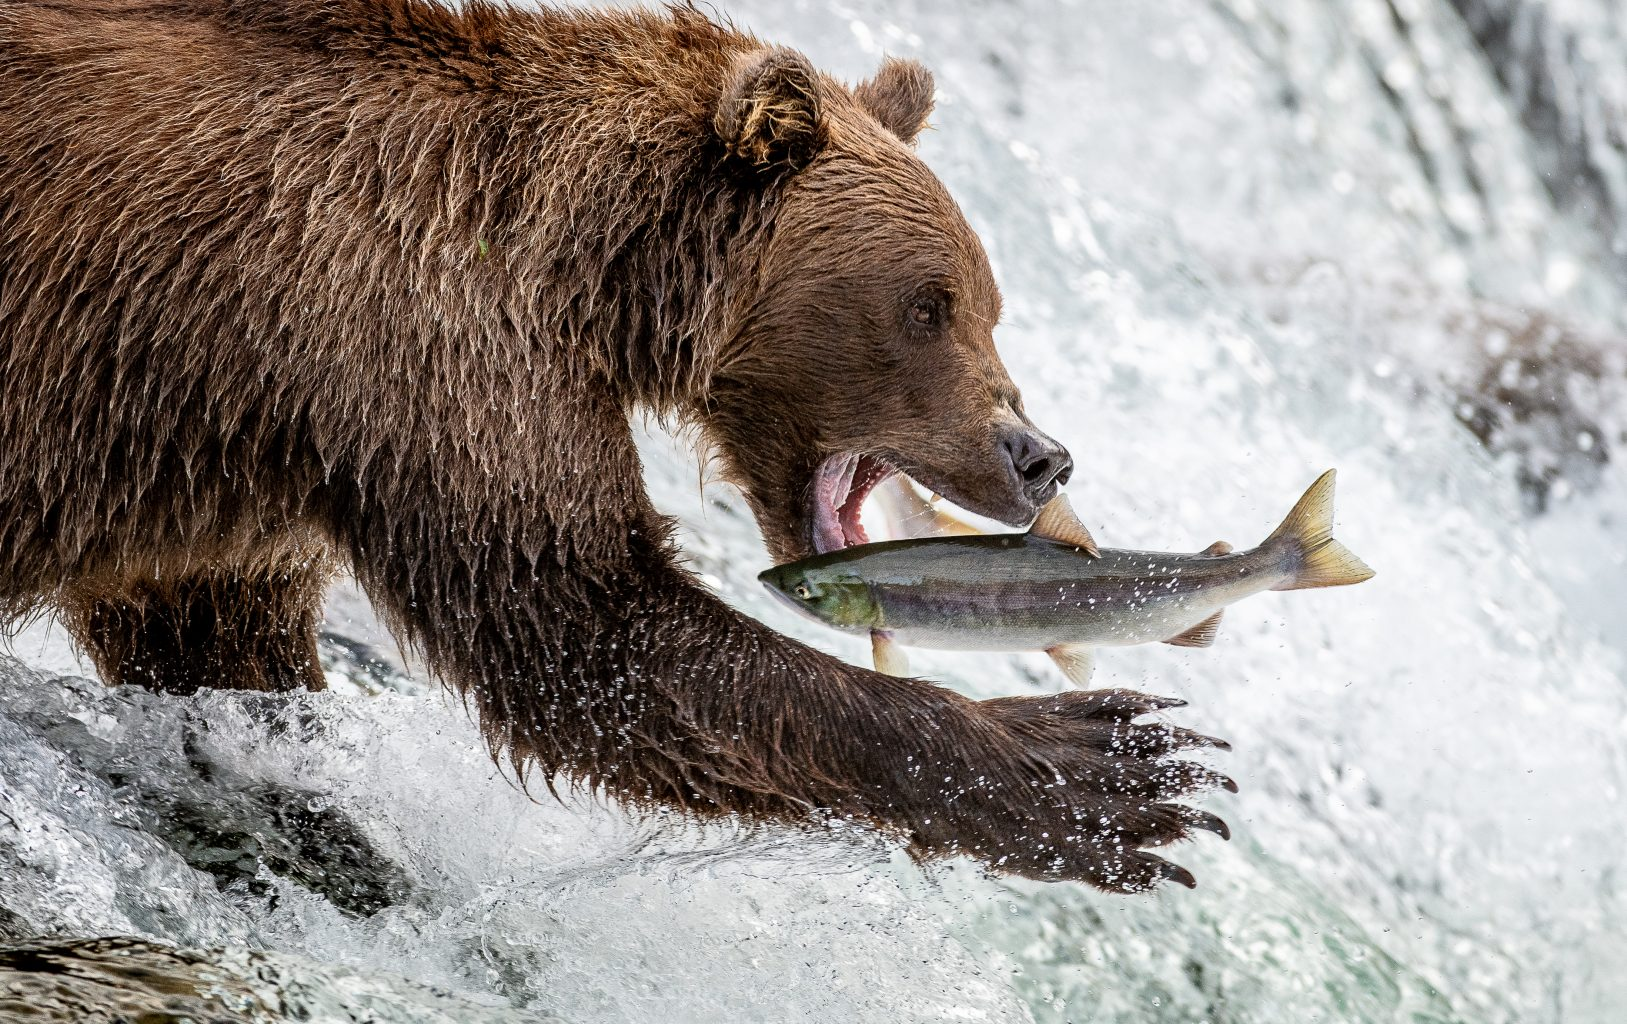 Alaska grizzly bear catches salmon on a Wild Departures tour with Alaska magazine pro photographer Michelle Theall